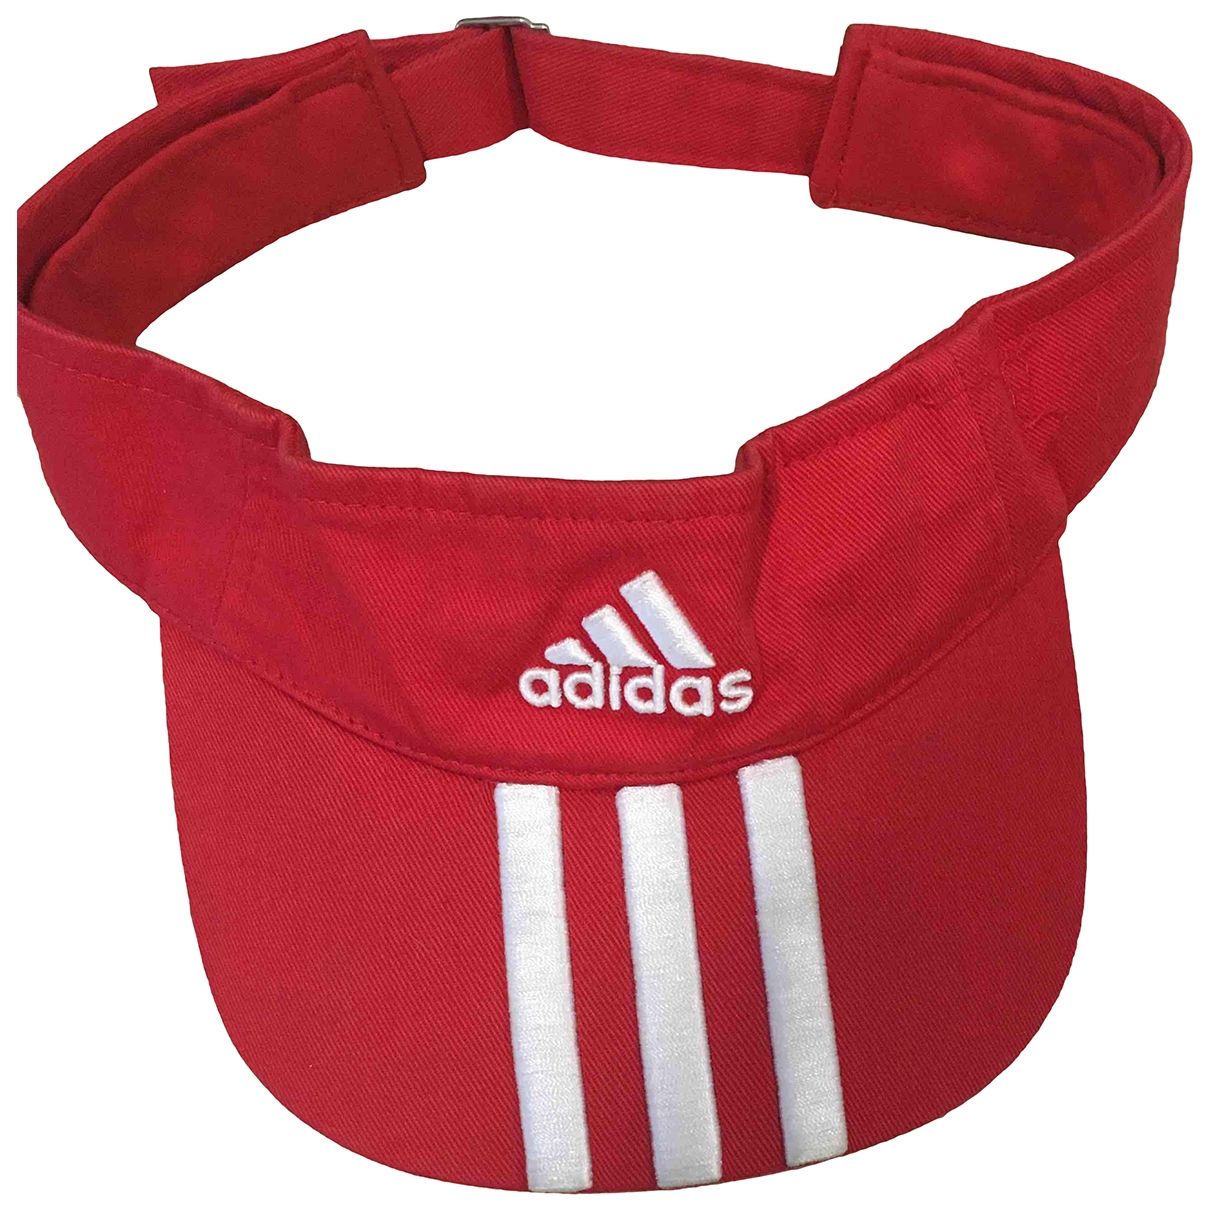 Adidas \N Red Cotton hat & Gloves for Kids \N